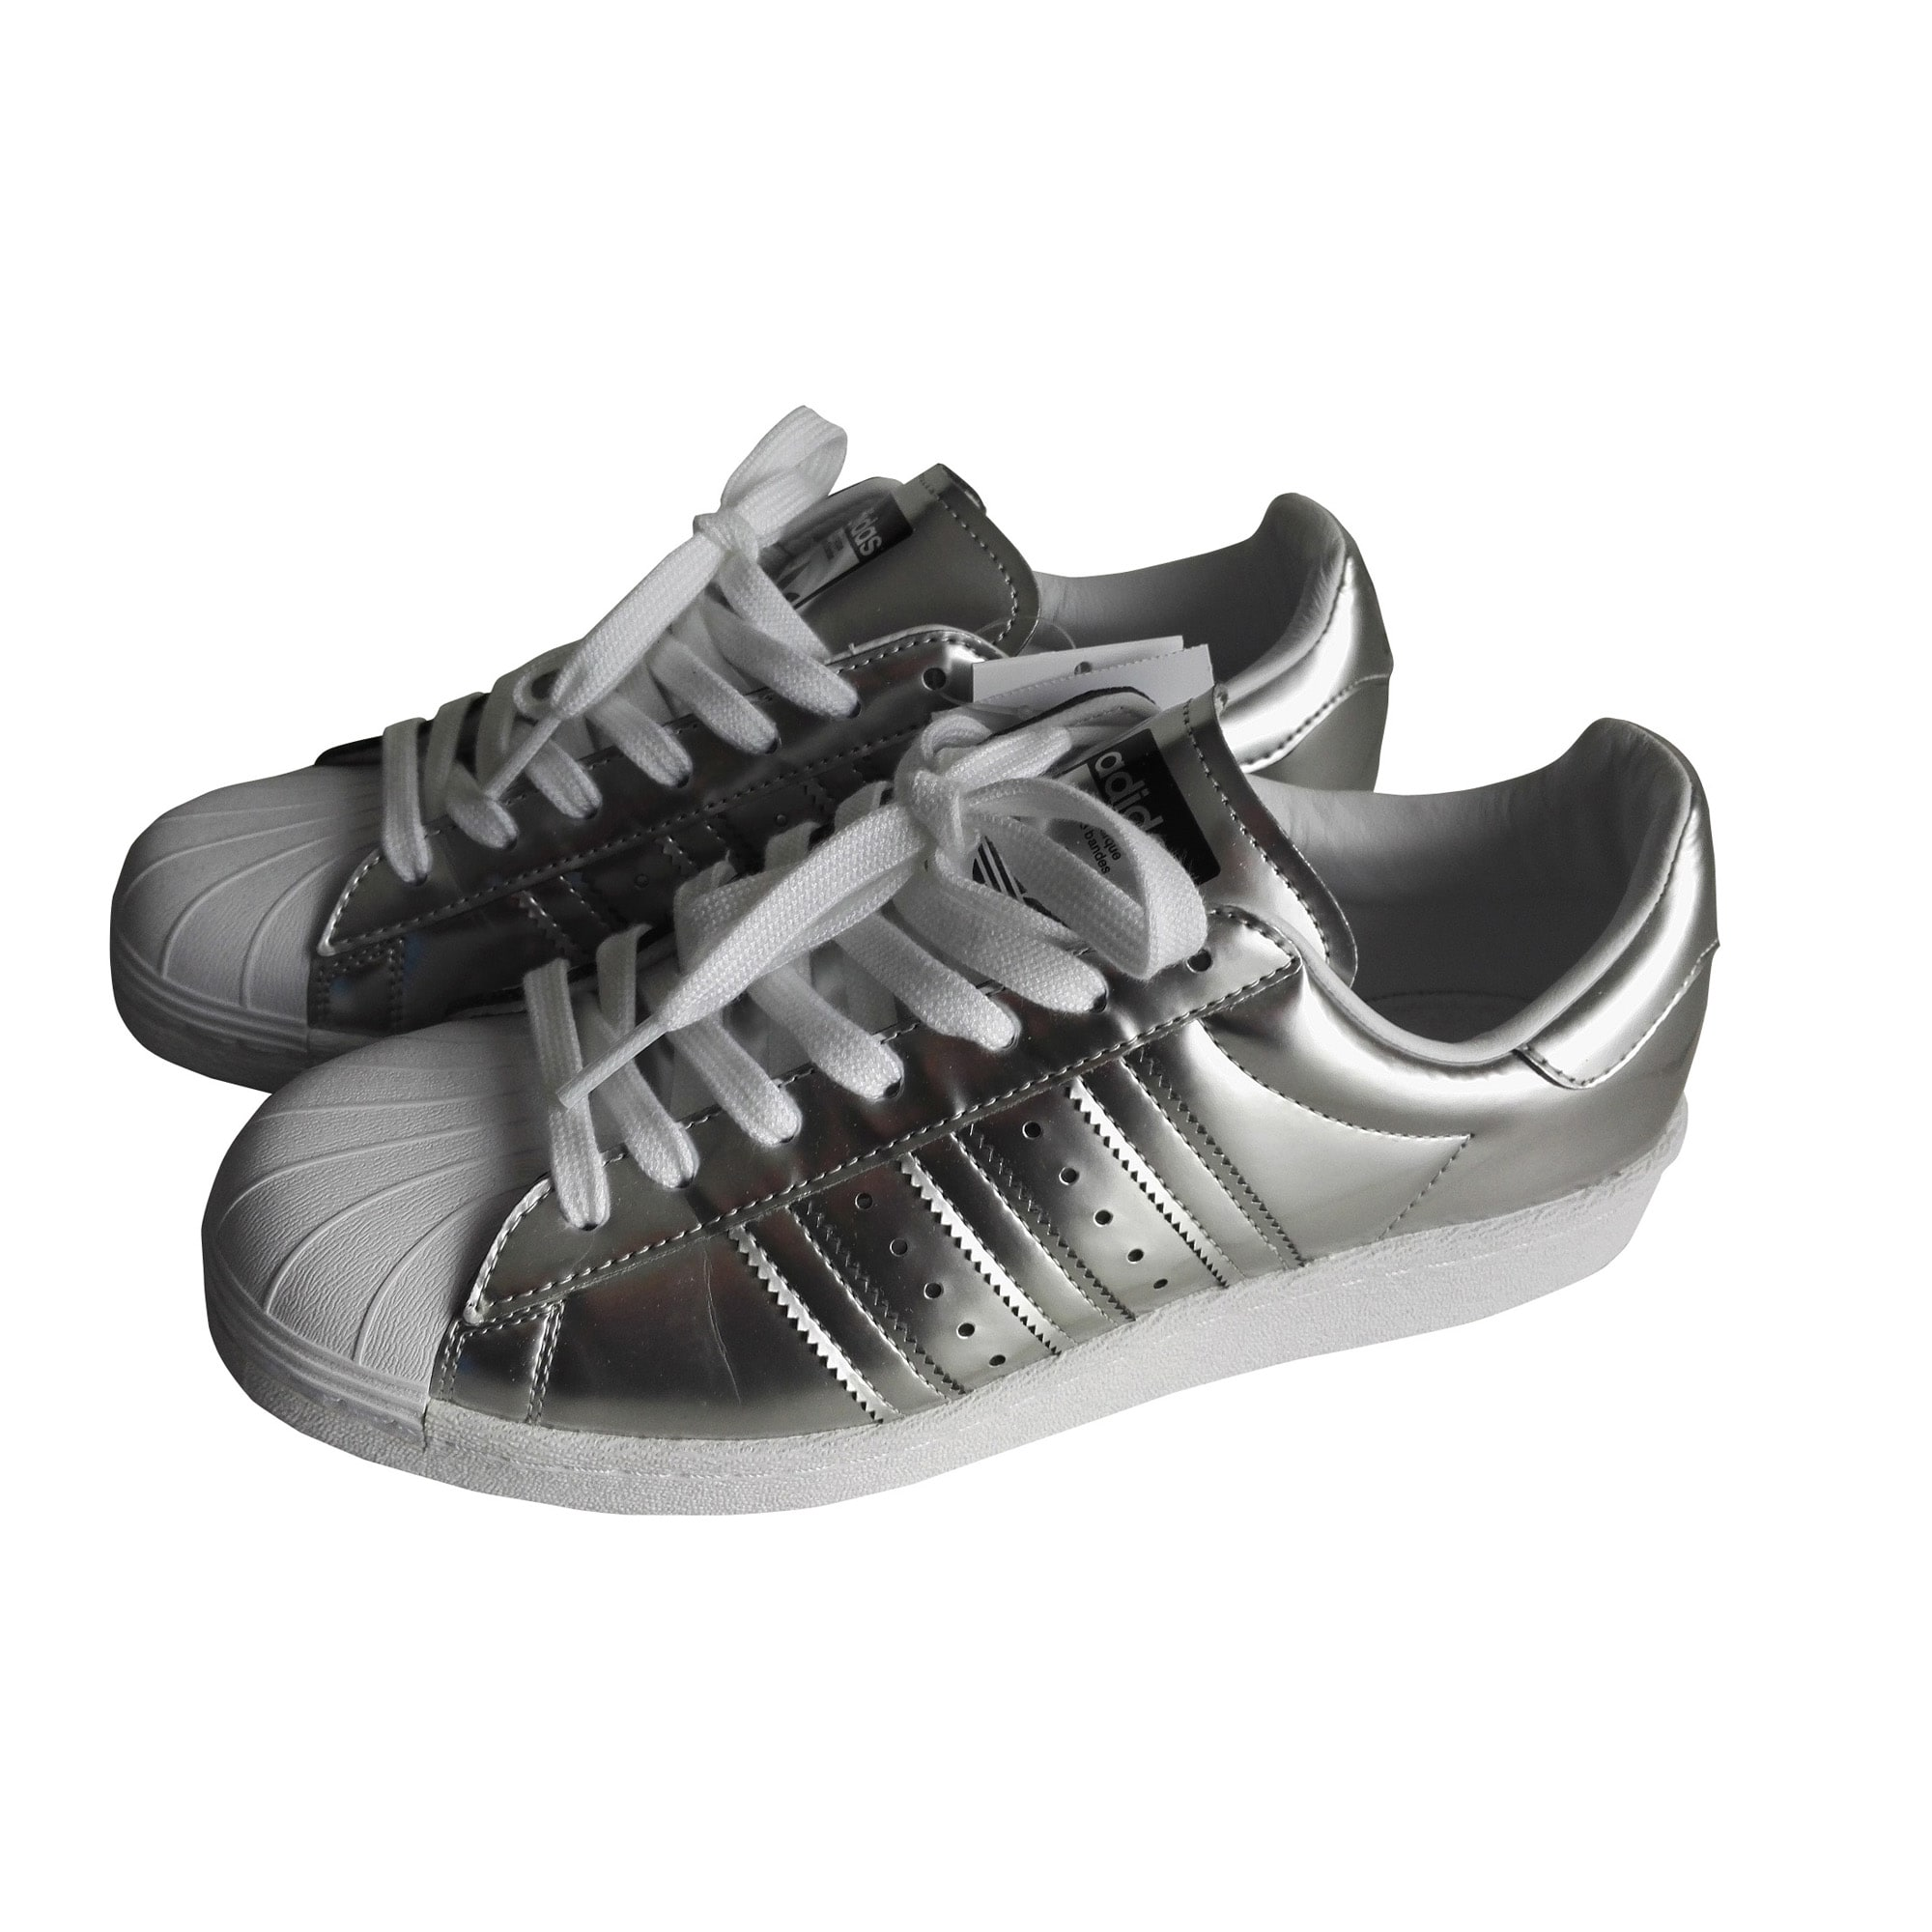 moins cher 5f176 19c58 Baskets ADIDAS